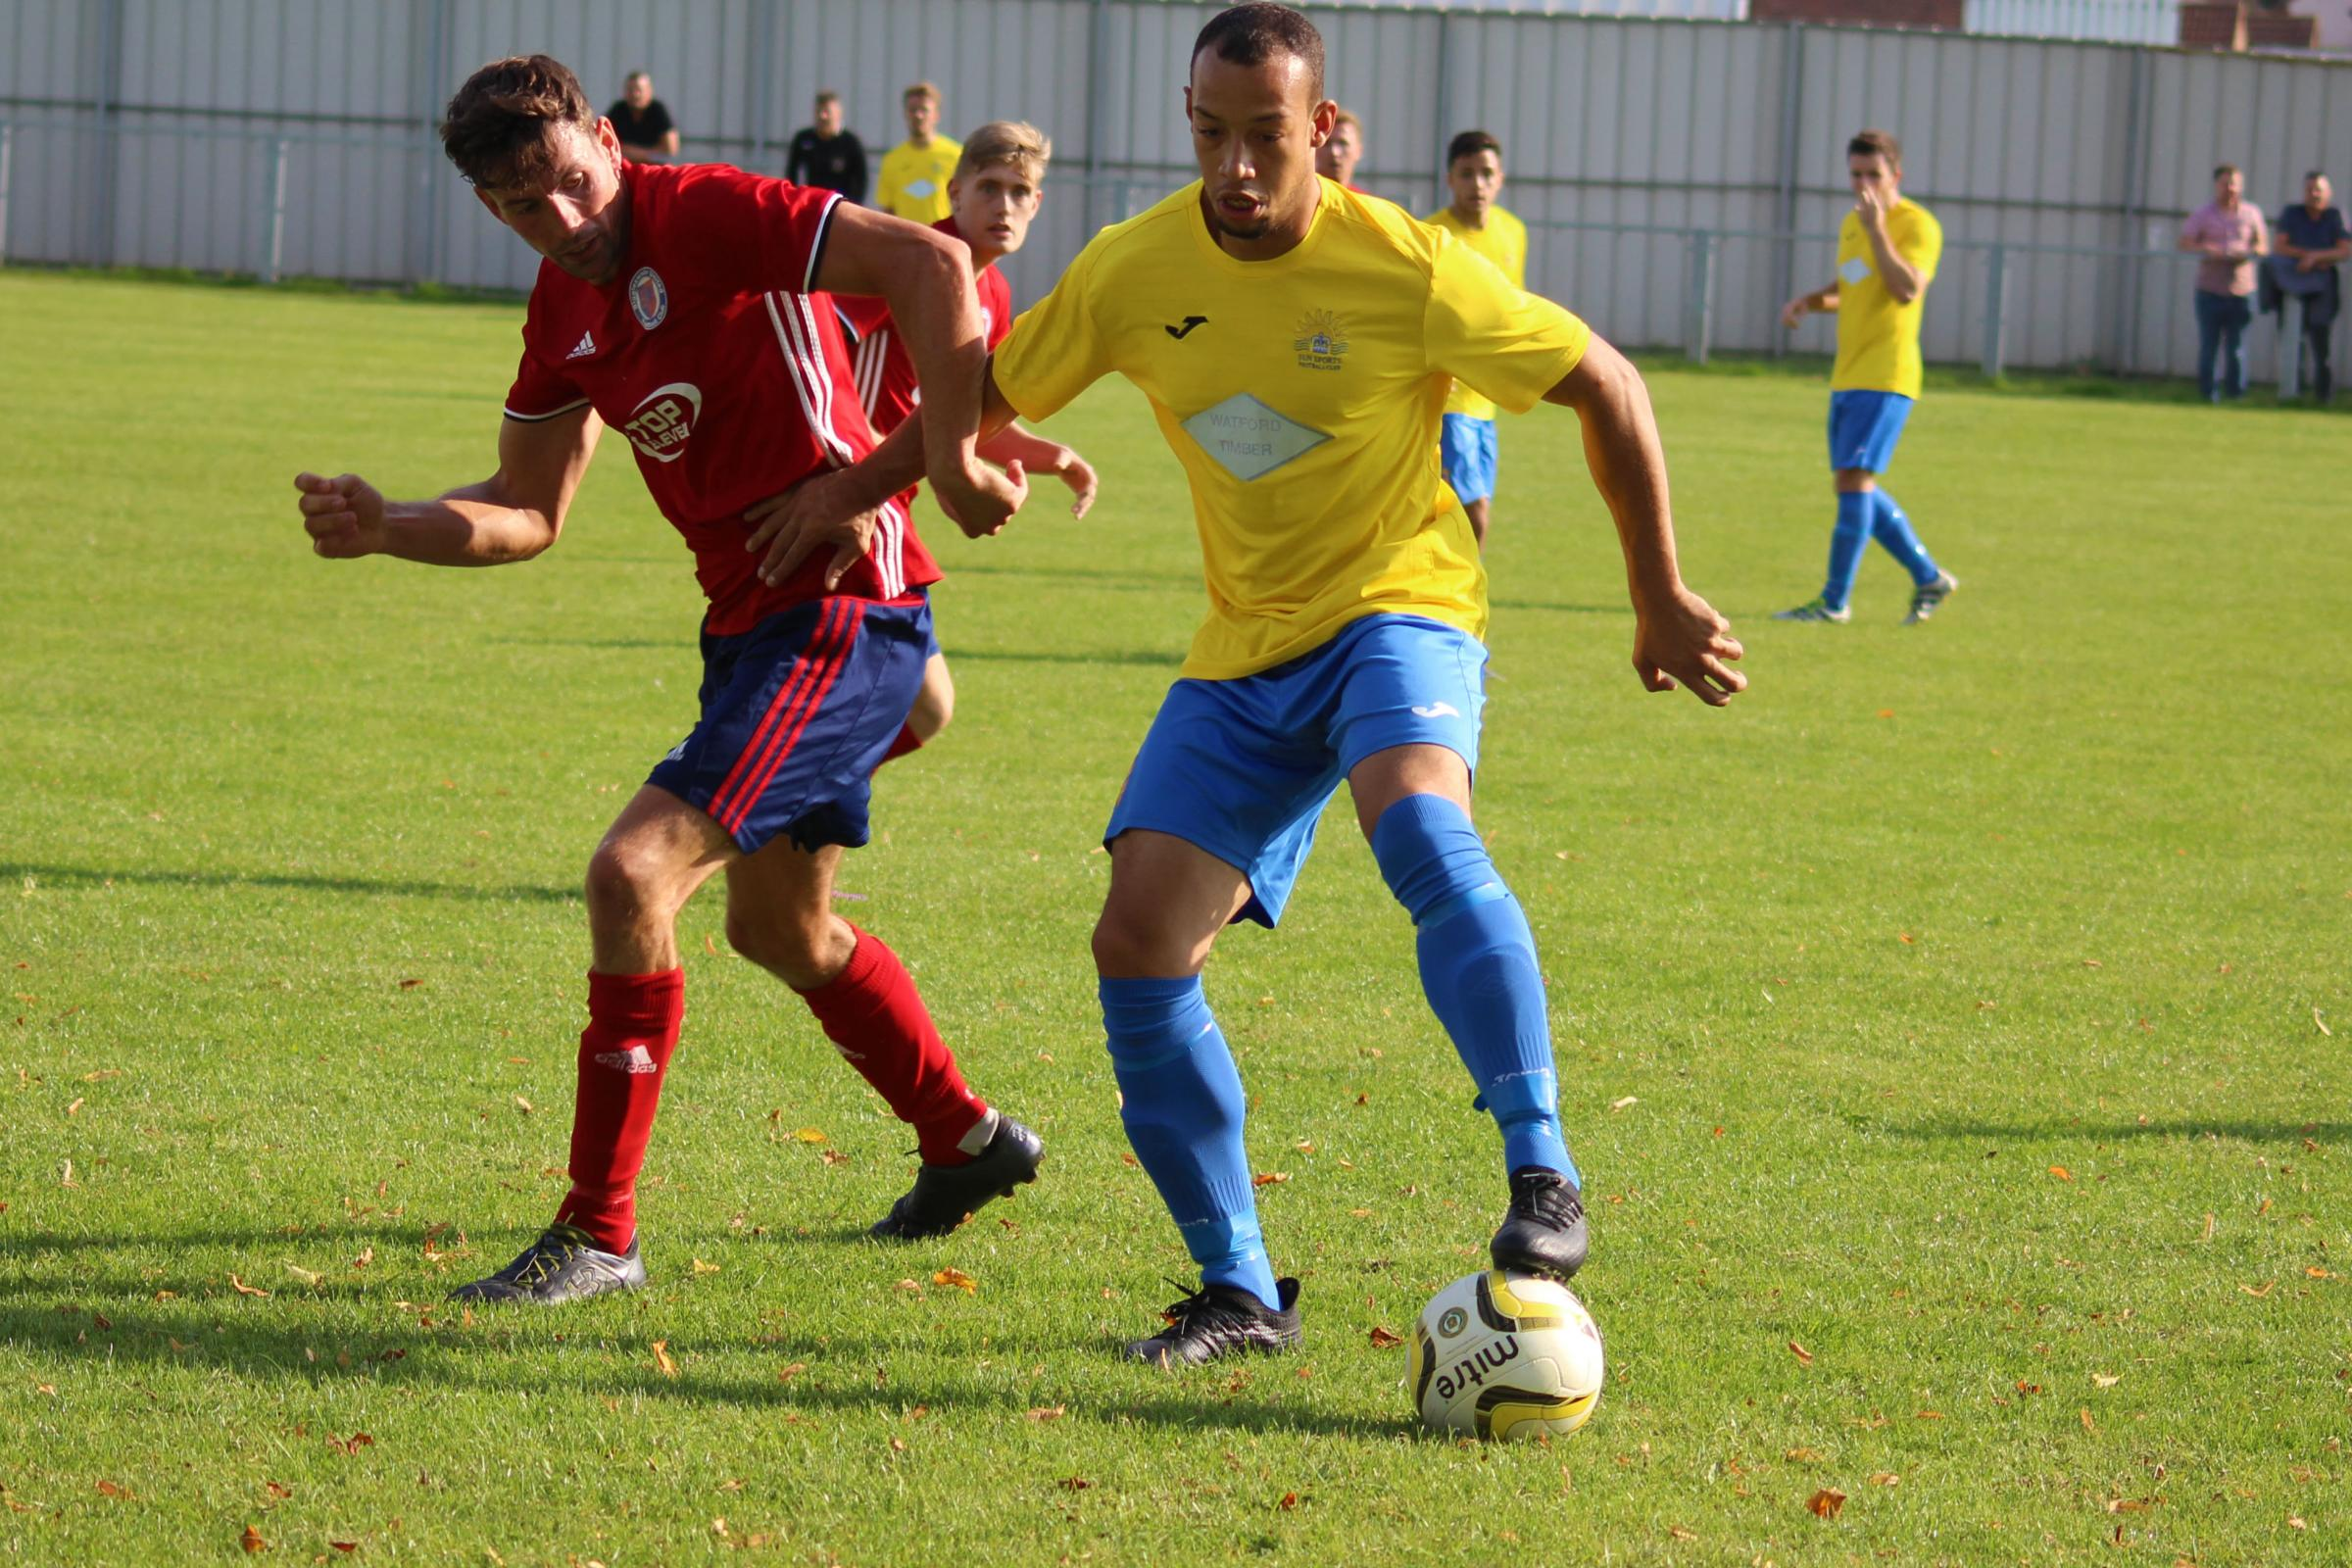 Sun Sports were in action against Biggleswade United